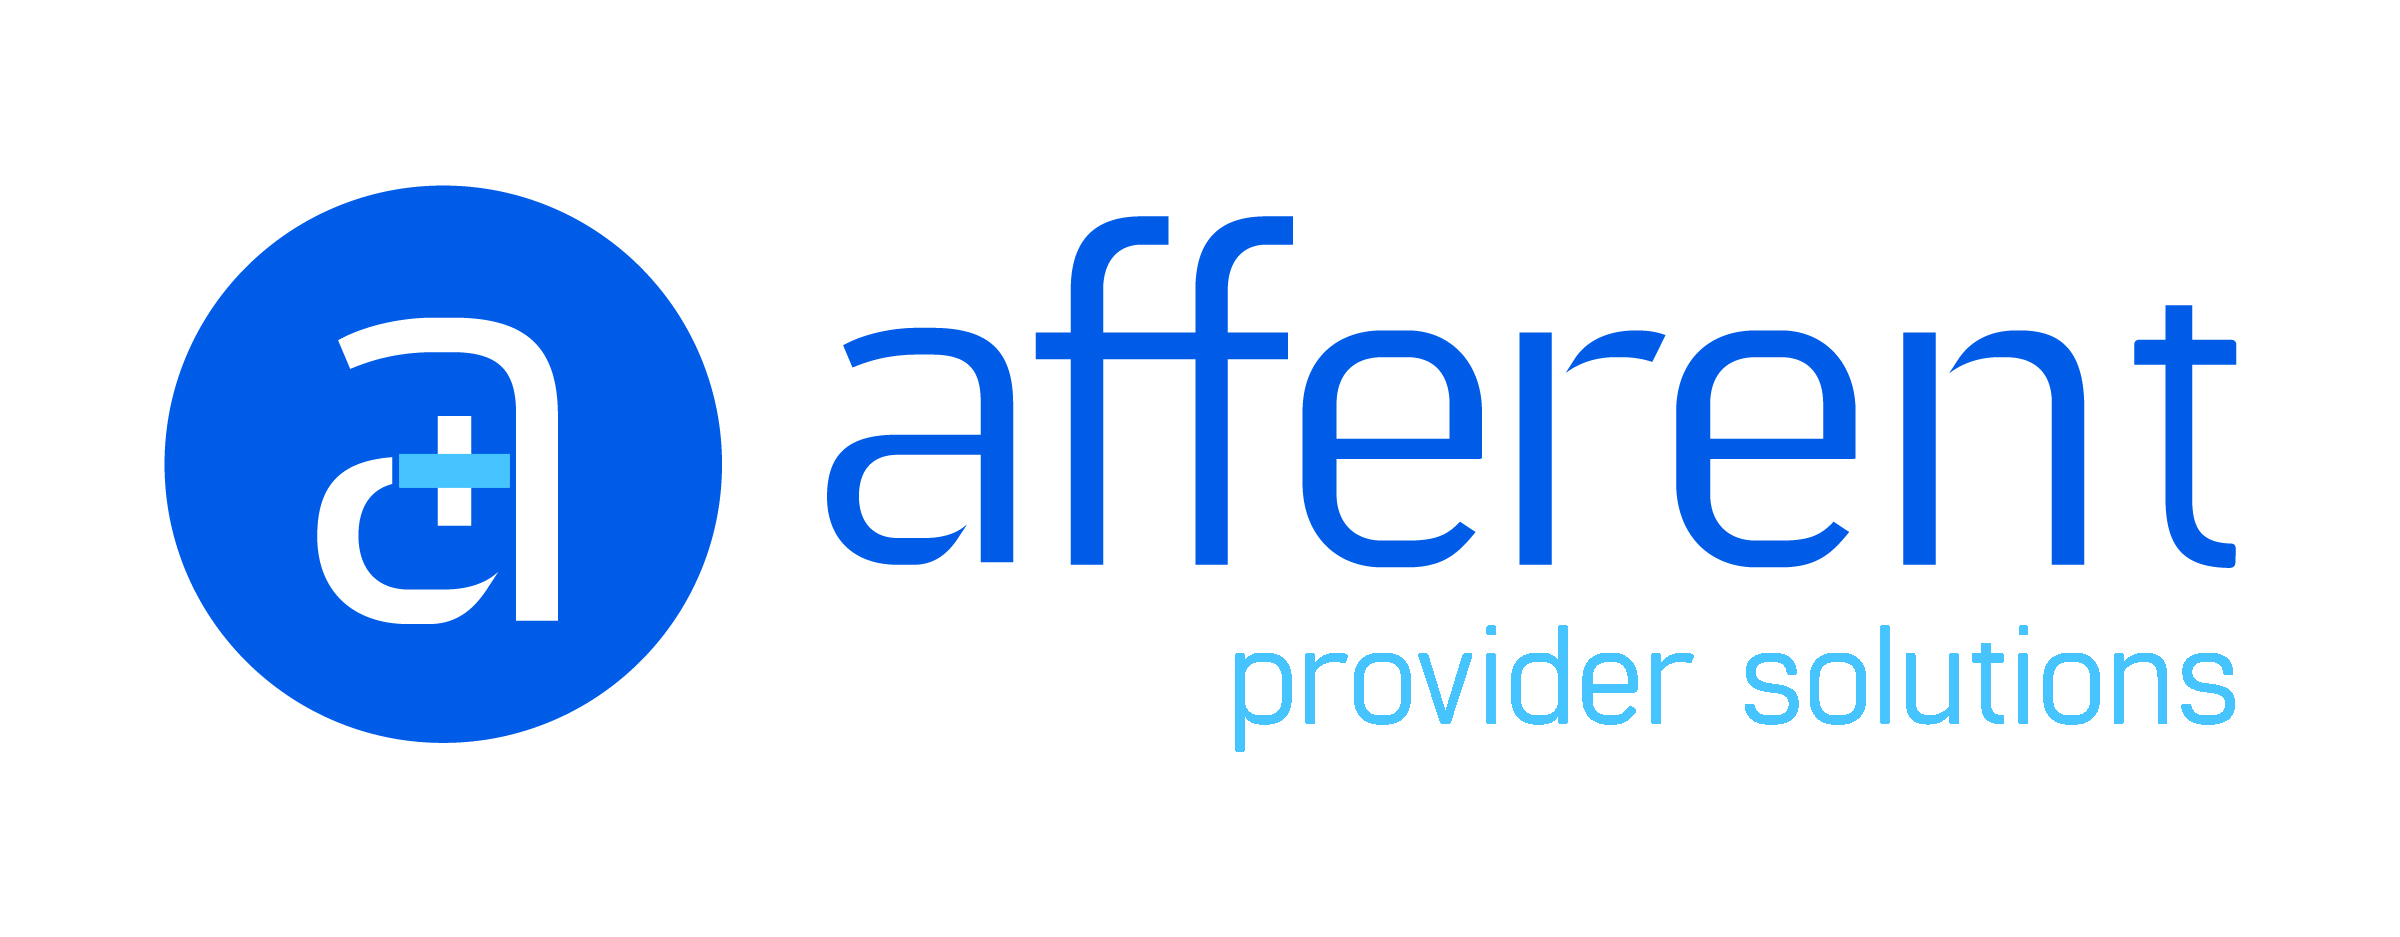 Job opportunities in physical therapy - Thanks For Visiting Our Afferent Solutions Open Provider Job Positions We Have Opportunities For All Health Providers Including Physicians Podiatrists